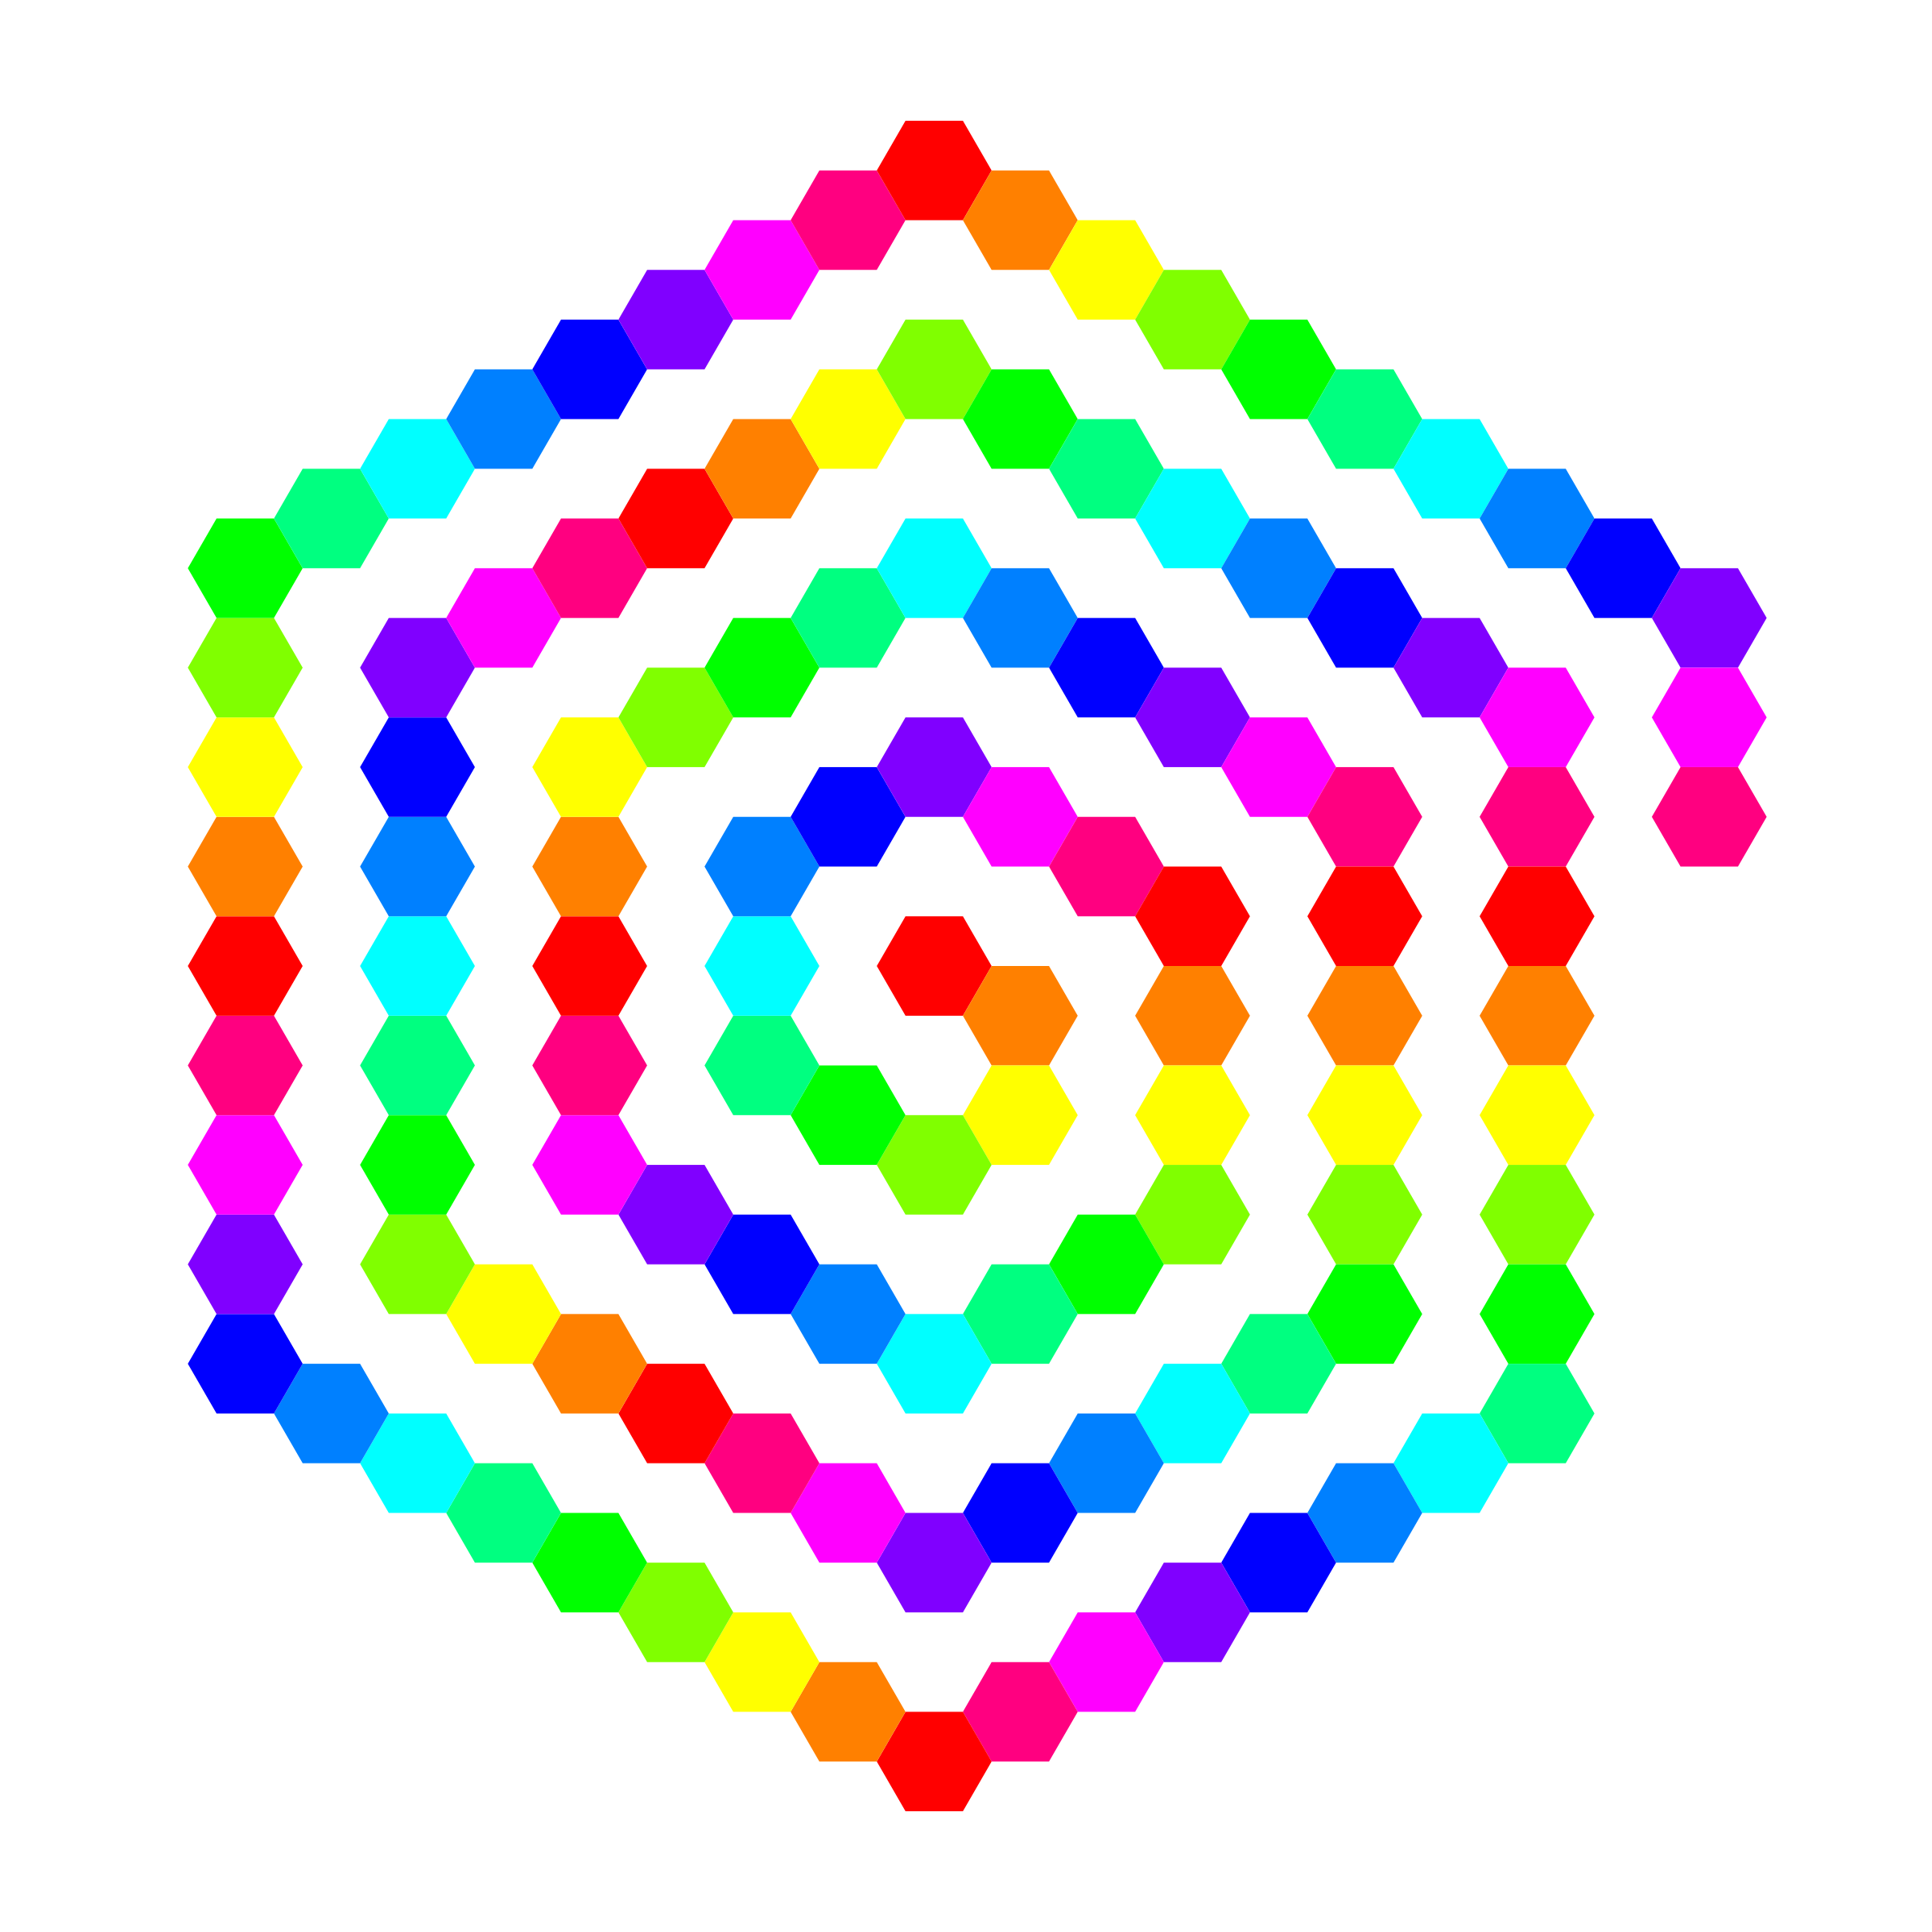 Hexagon drawing spiral. Icons png free